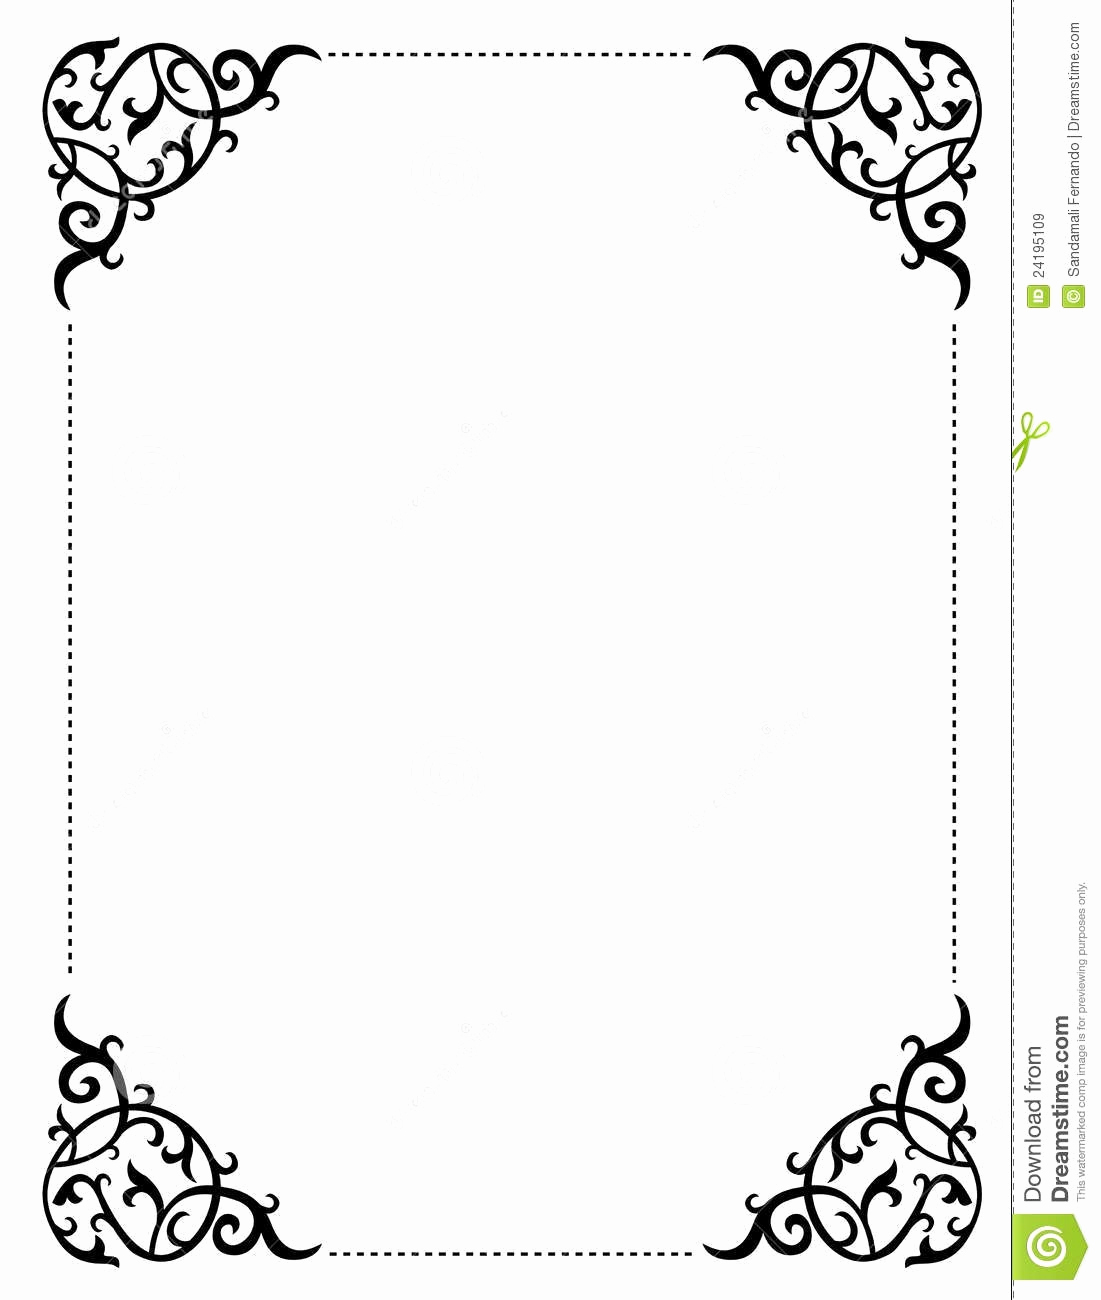 Wedding Invitation Border Design Elegant Free Wedding Invitation Sample Clipart Png and Cliparts